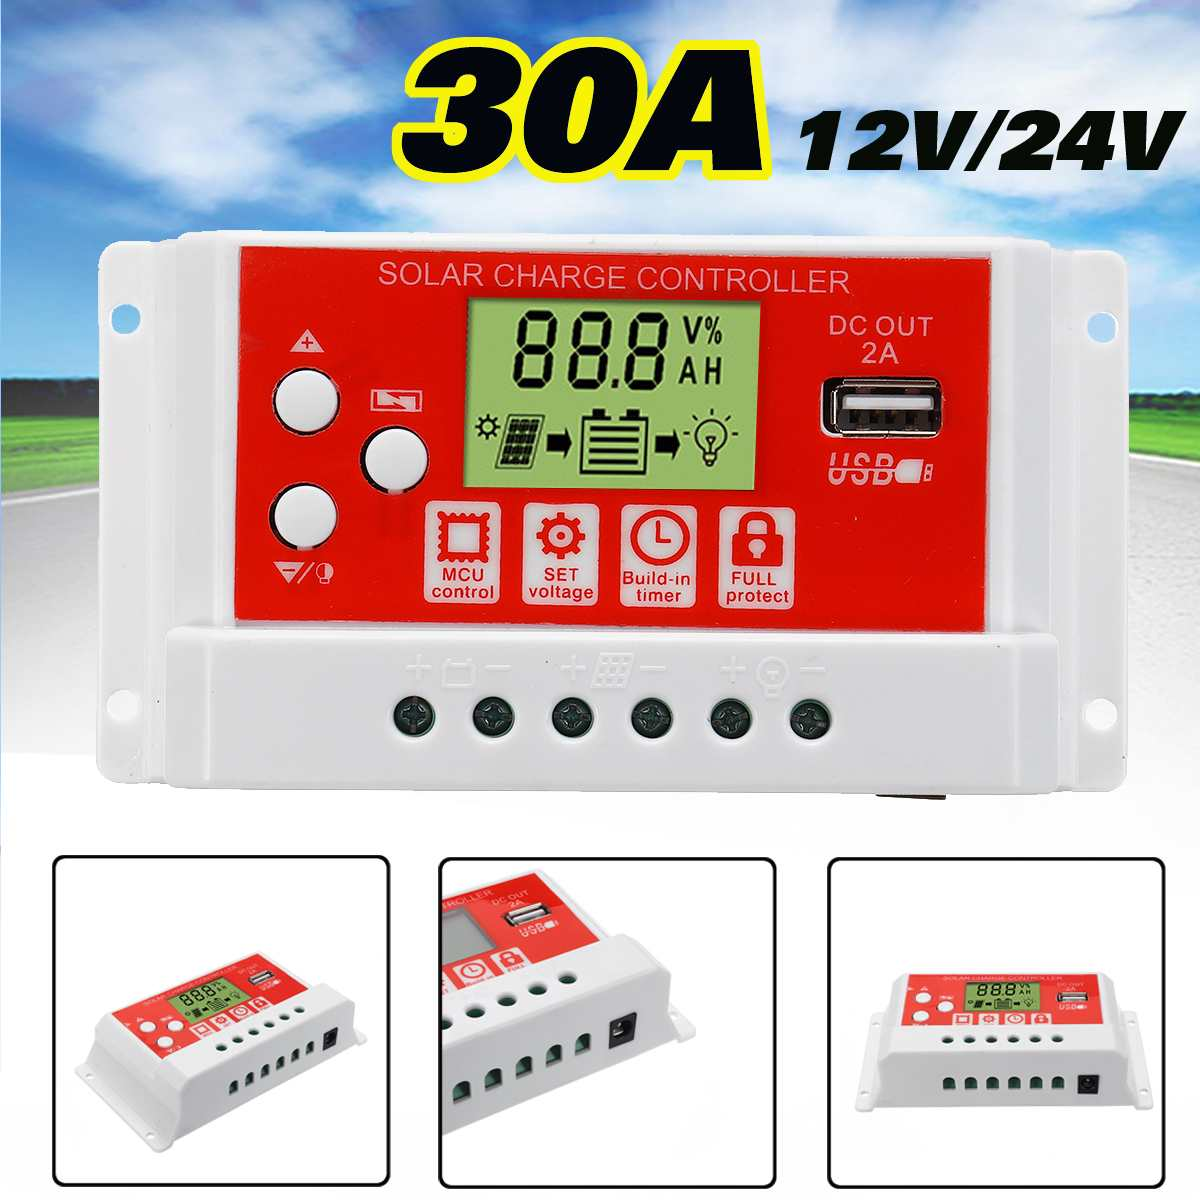 Newest <font><b>30A</b></font> <font><b>Solar</b></font> <font><b>Charge</b></font> <font><b>Controller</b></font> 3-Stage <font><b>PWM</b></font> Dual USB LCD Display 12V 24V Auto <font><b>Solar</b></font> Cell Panel Charger Regulator with Load image